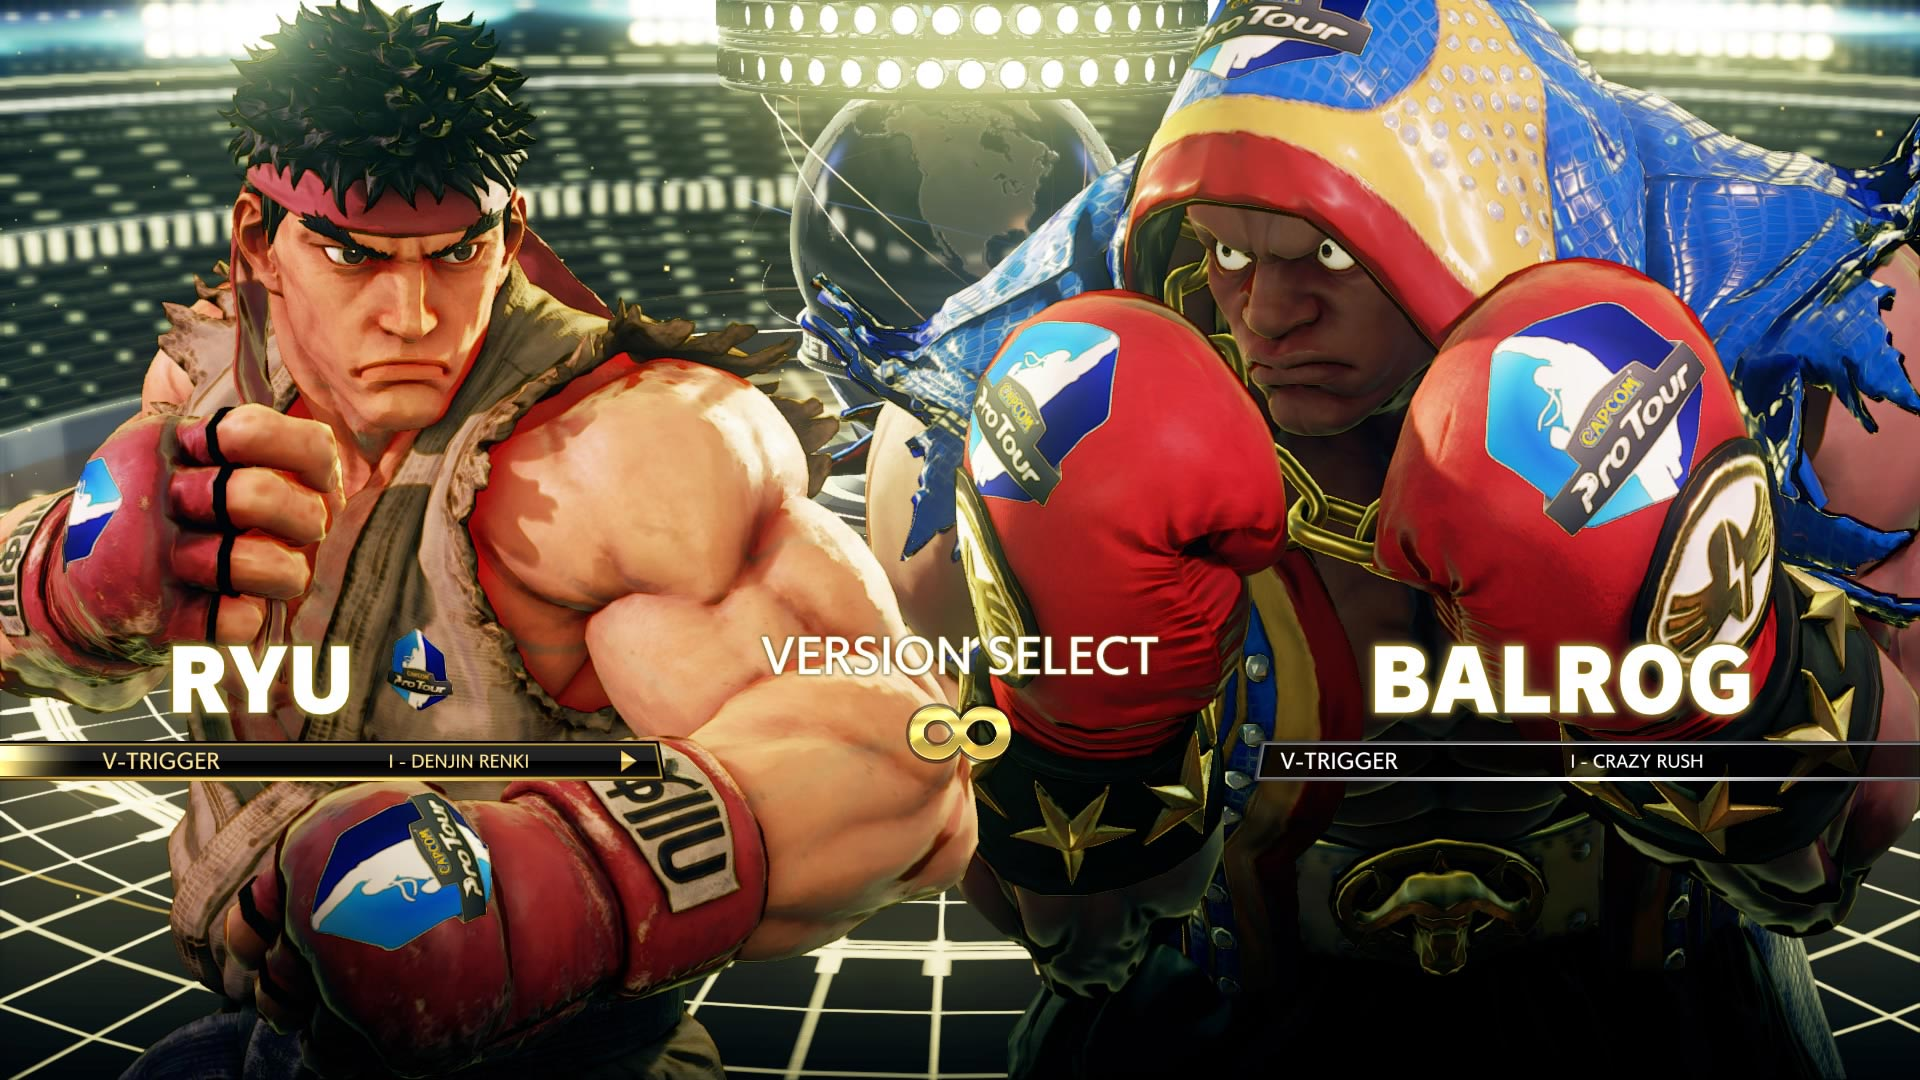 Sponsored Content in SF5 2 out of 3 image gallery